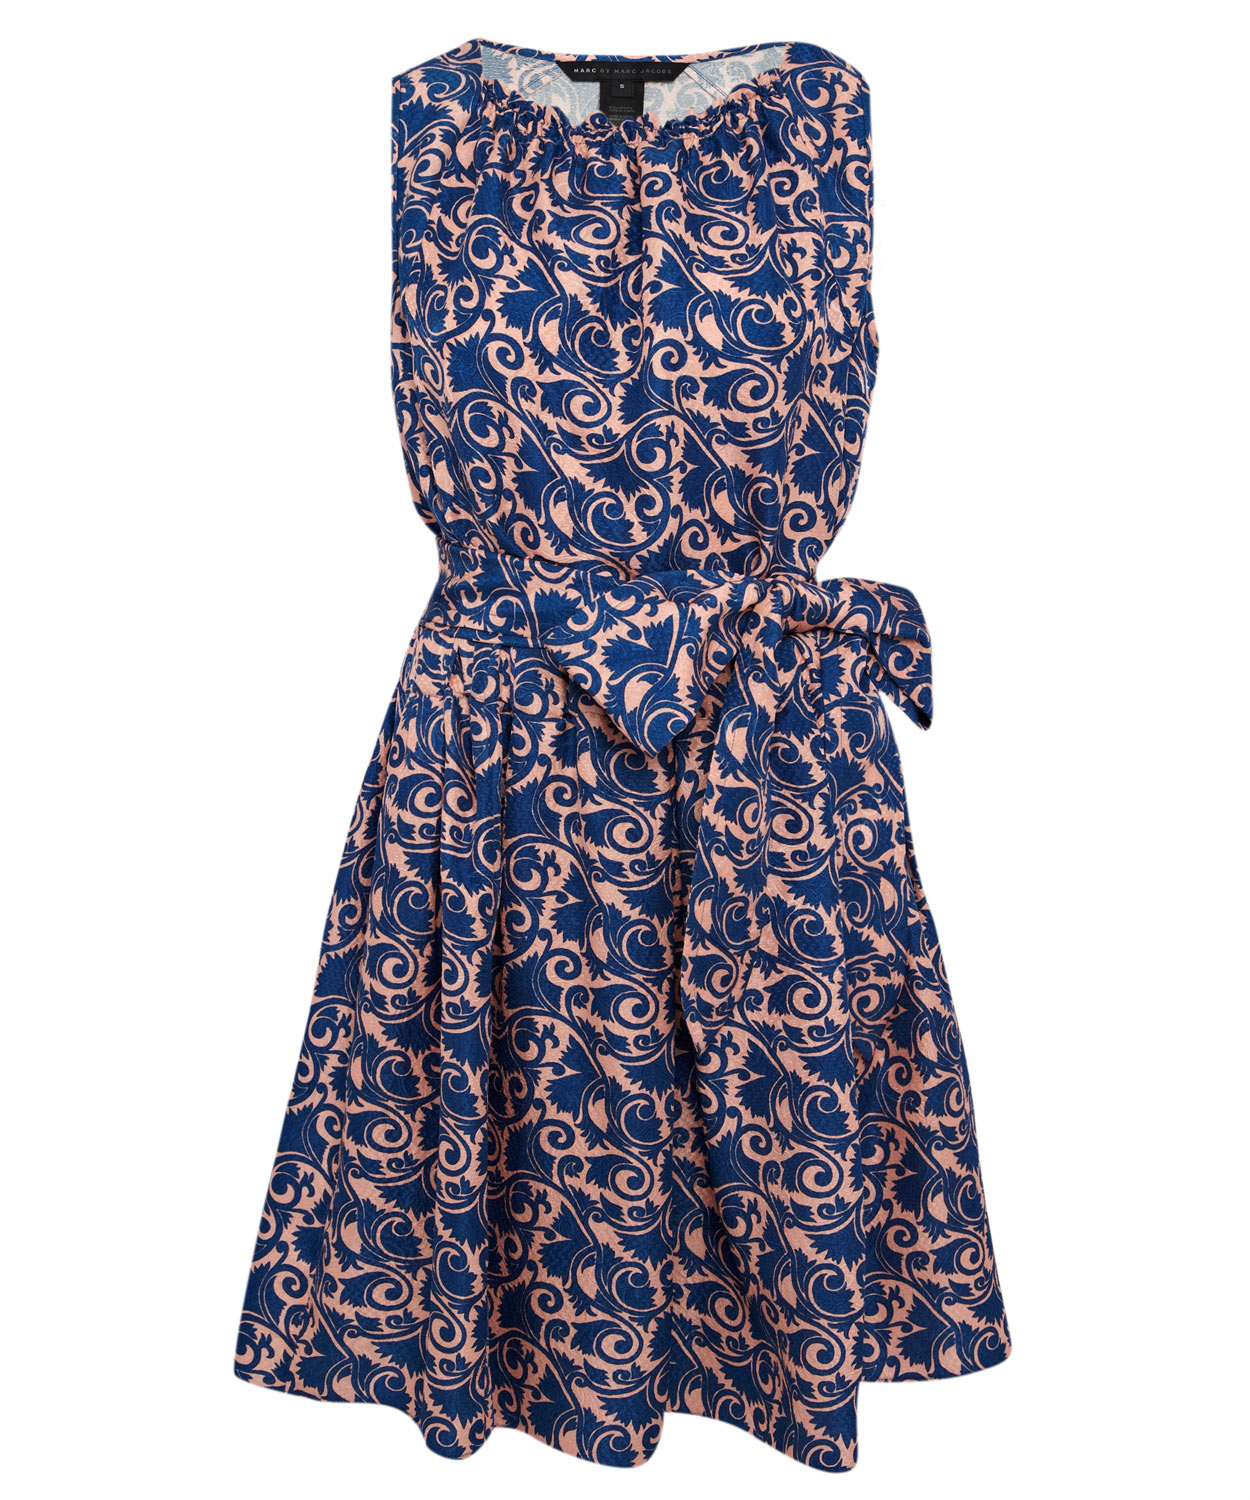 Marc by marc jacobs navy blue dress